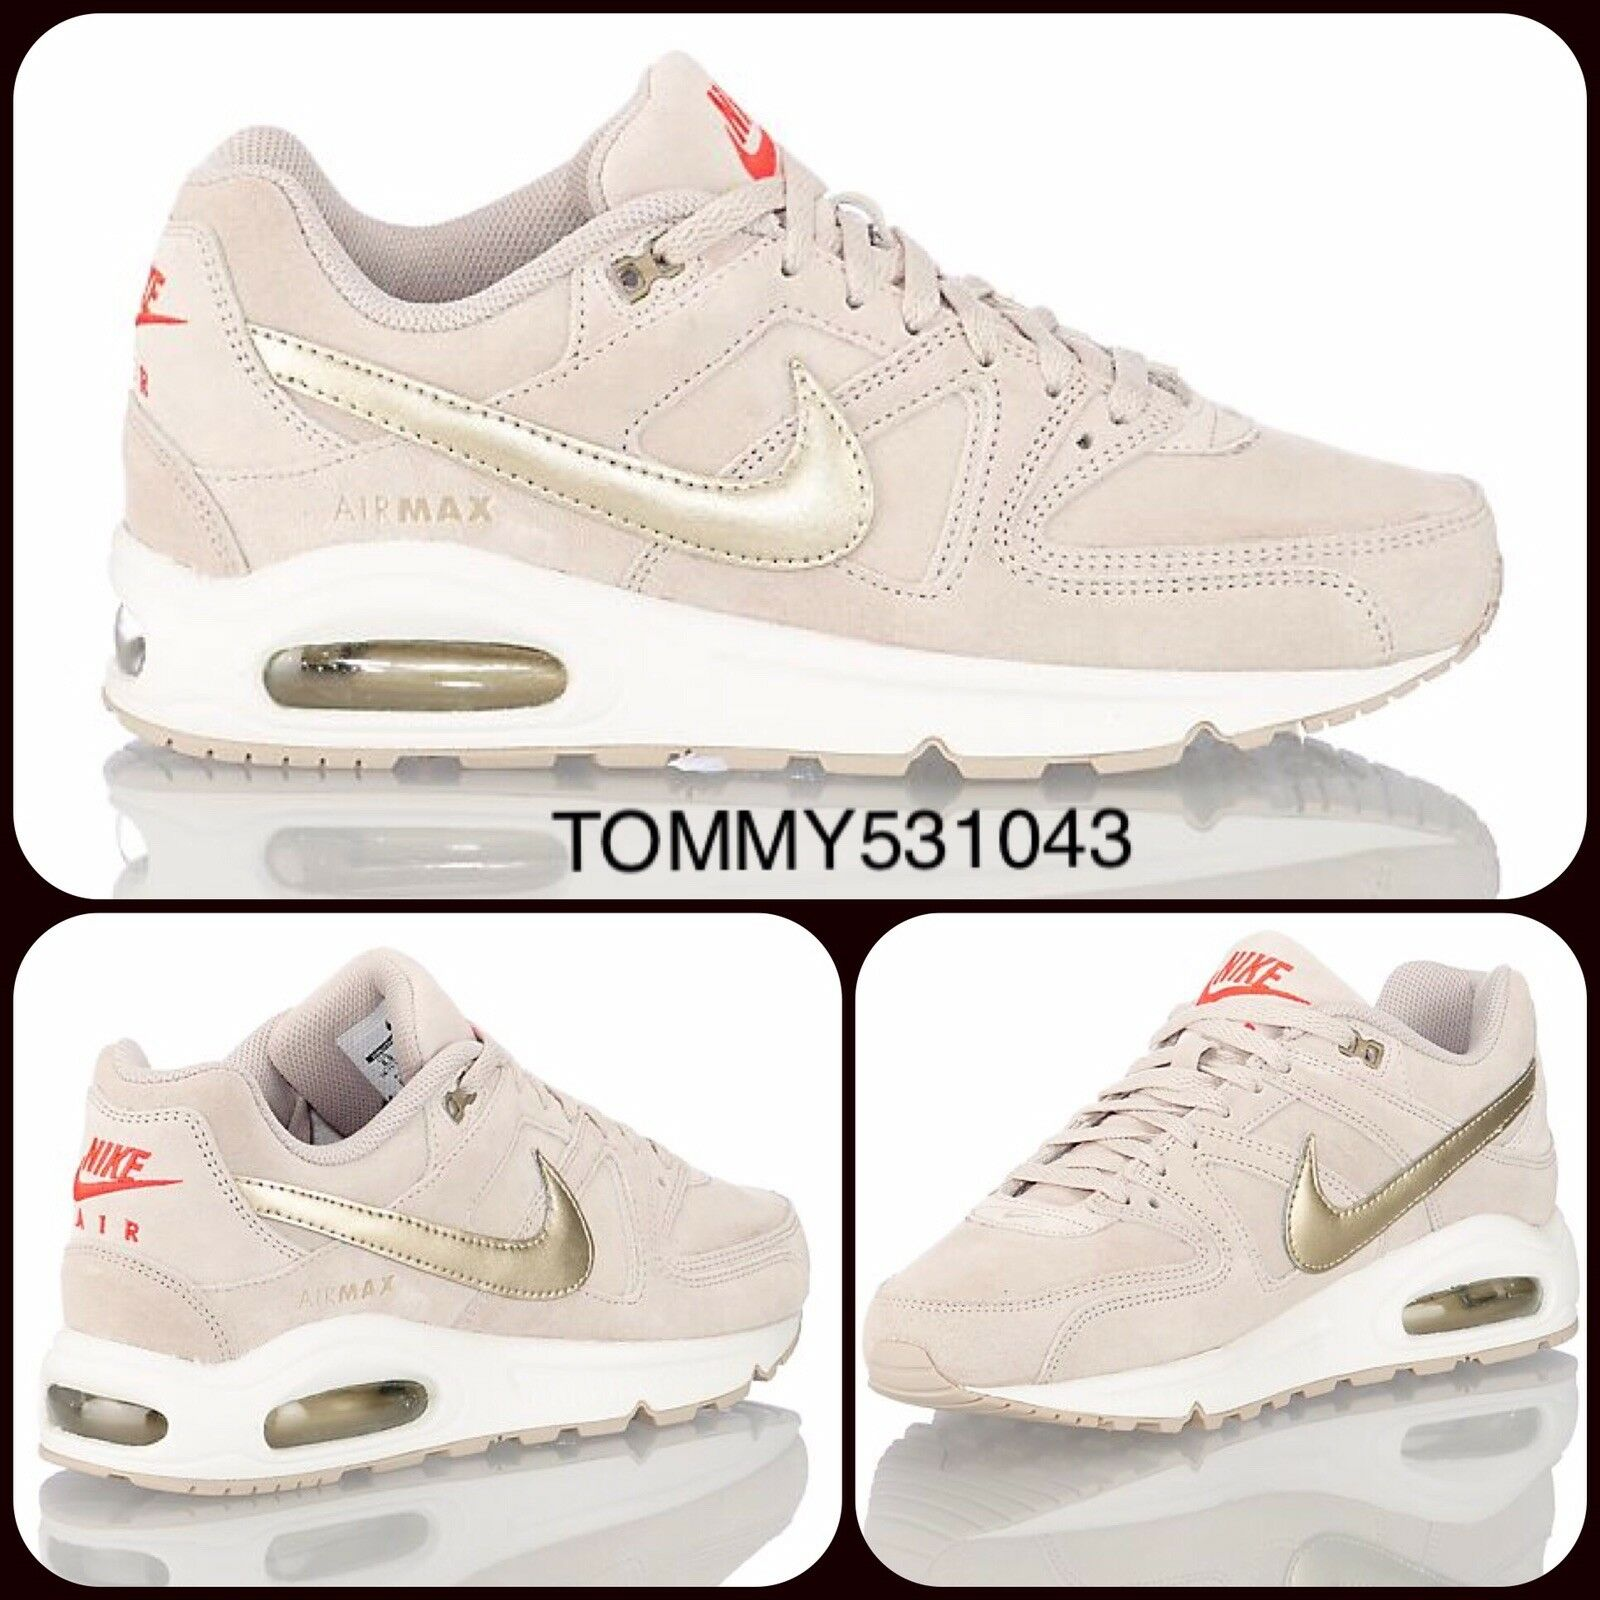 Nike Air Command Max Command Air Premium | UK 8.5 EU 43 US 11 | 718896-228 String/MatlicGold 9344e2